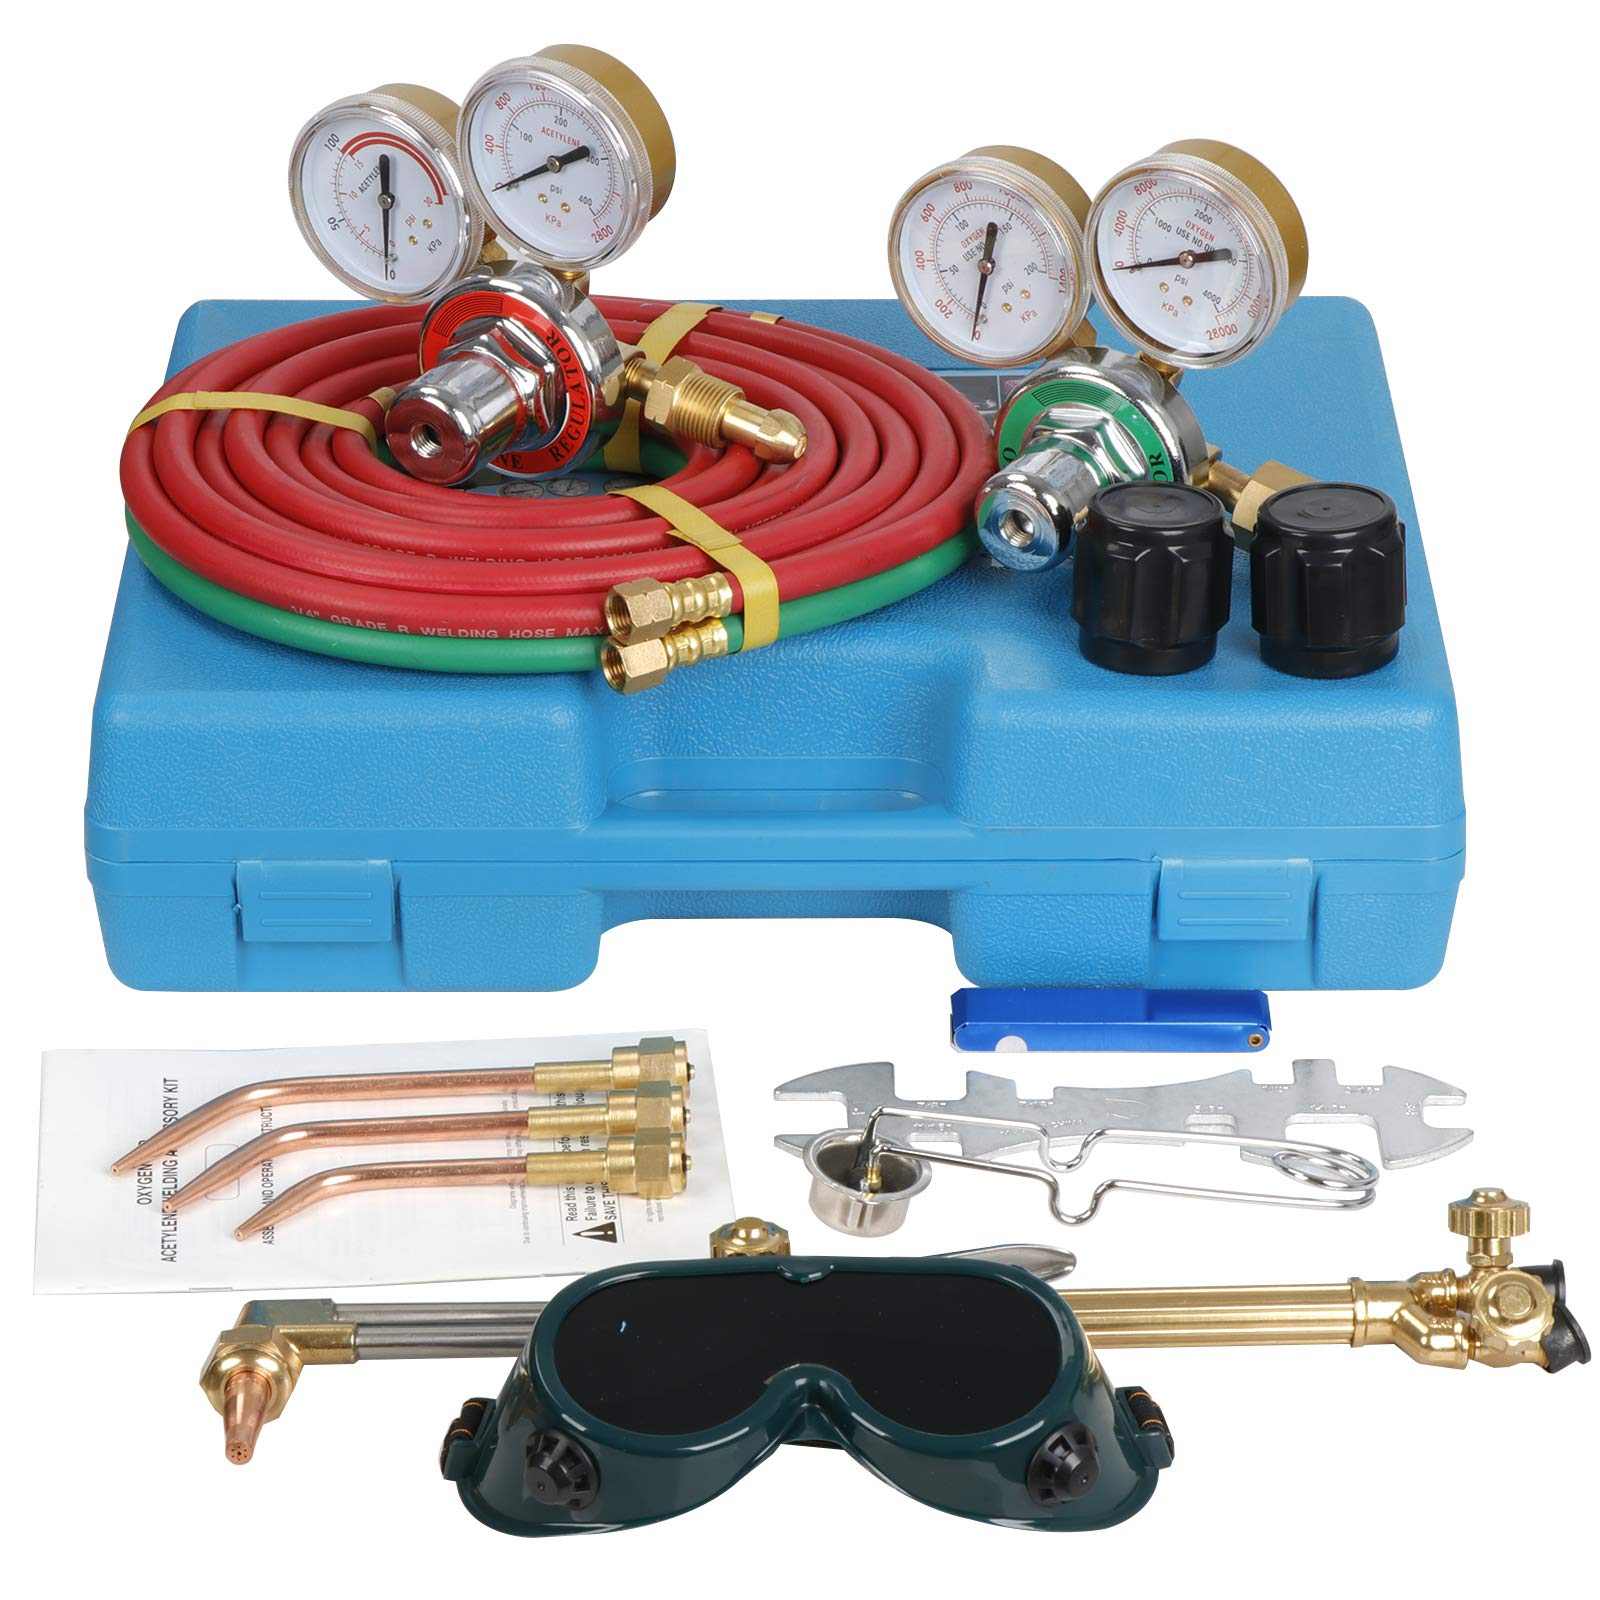 Professional Gas Welding Cutting Torch Kit Hose Portable Oxy Acetylene Brazing